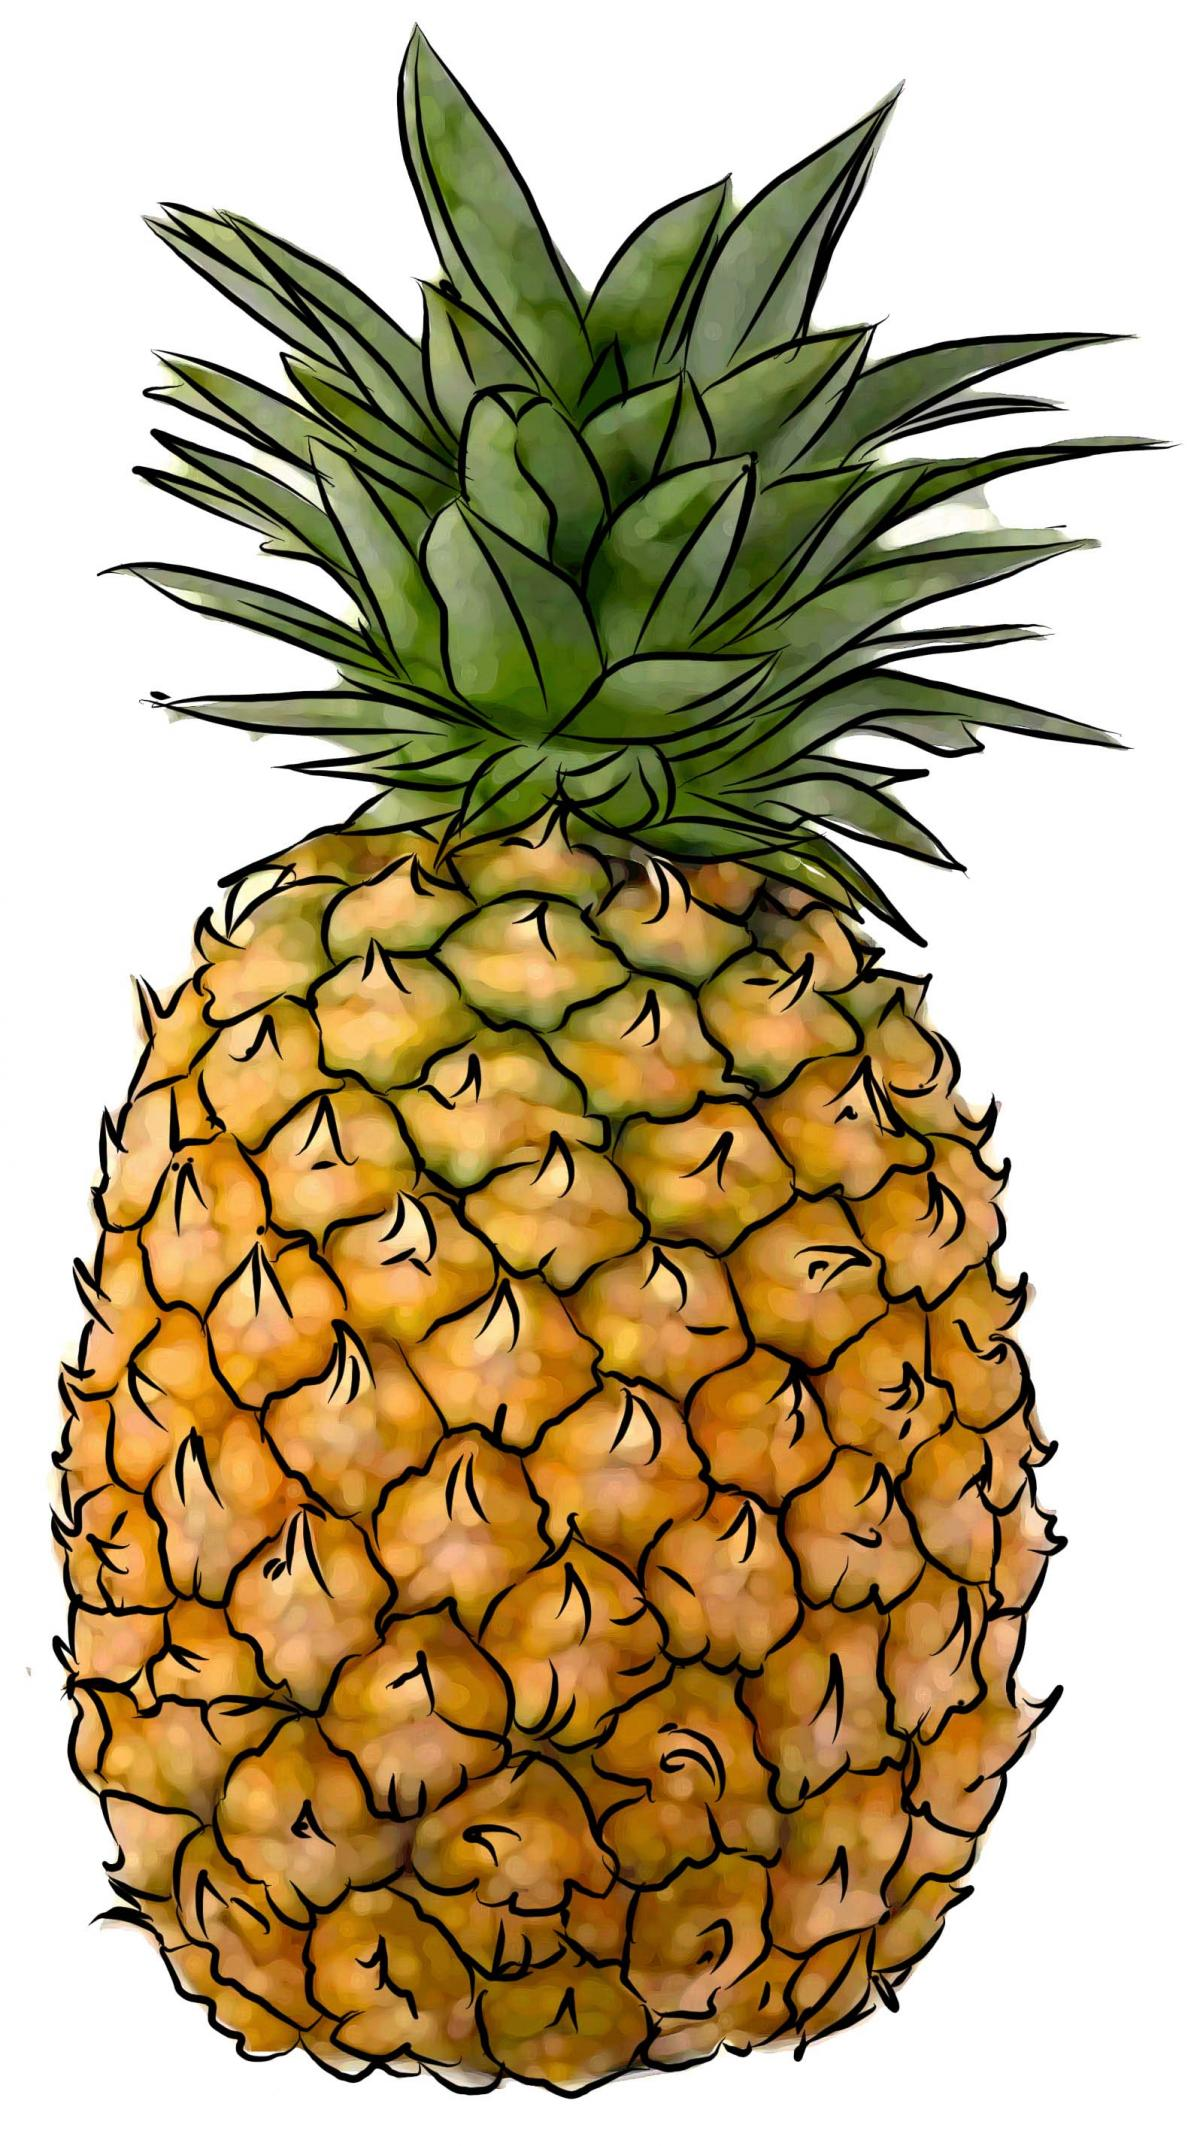 Food - Pineapple - 00M - Non-country specific